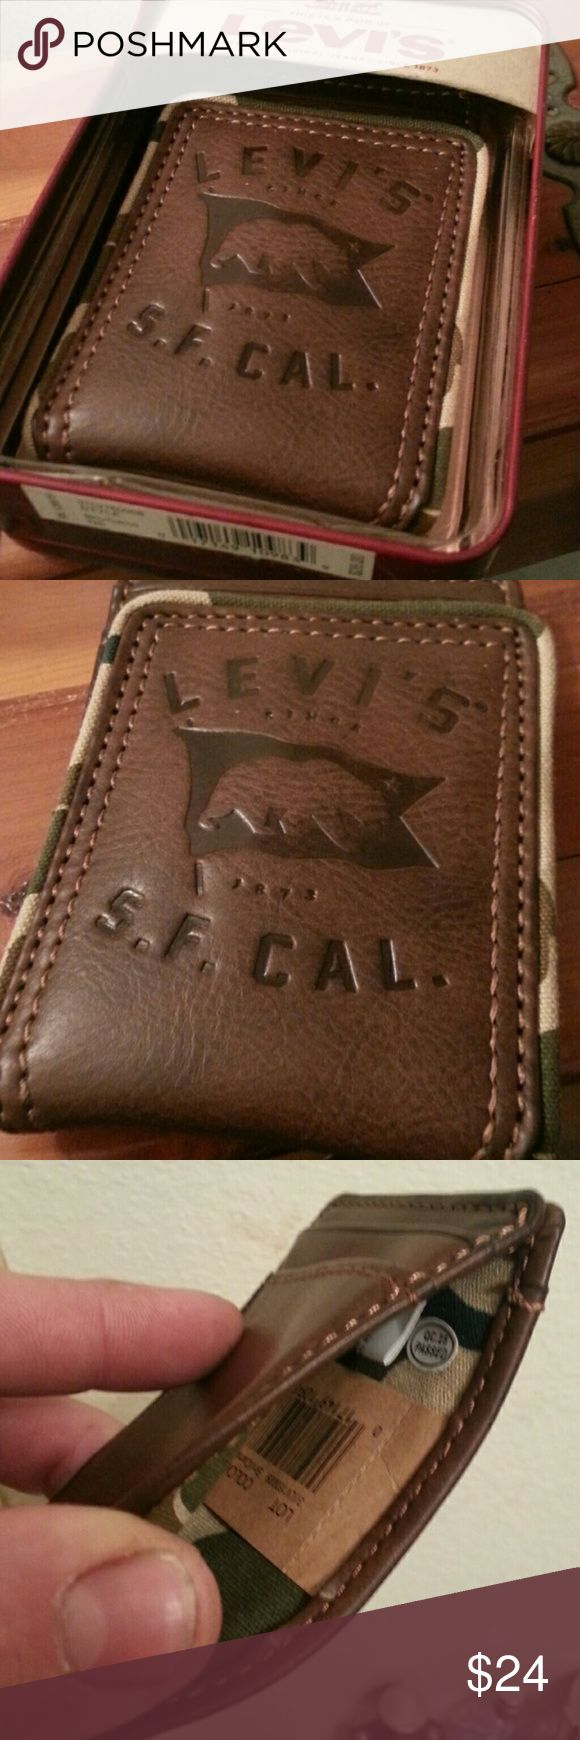 "*NWT*  ""LEVIS"" LEATHER/CAMO MONEY CLIP/CARD HOLDER AUTHENTIC ""LEVIS"" BRAND W/ GENUINE LEATHER AND CAMOUFLAGE LINING & EDGING. This super cool money clip is so much more than your traditional boring metal clip rolling around in your dad's top drawer.  This is what is conceived when a BAD A** LEATHER WALLET MEETS MONEY CLIP!  With the stylish CAMOUFLAGE design and the MAGNETIC LEATHER FLAP FOR HOLDING CARDS, this unique masterpiece is a WIN-WIN foR EVERYONE!  NO REASONABLE OFFER REFUSED…"